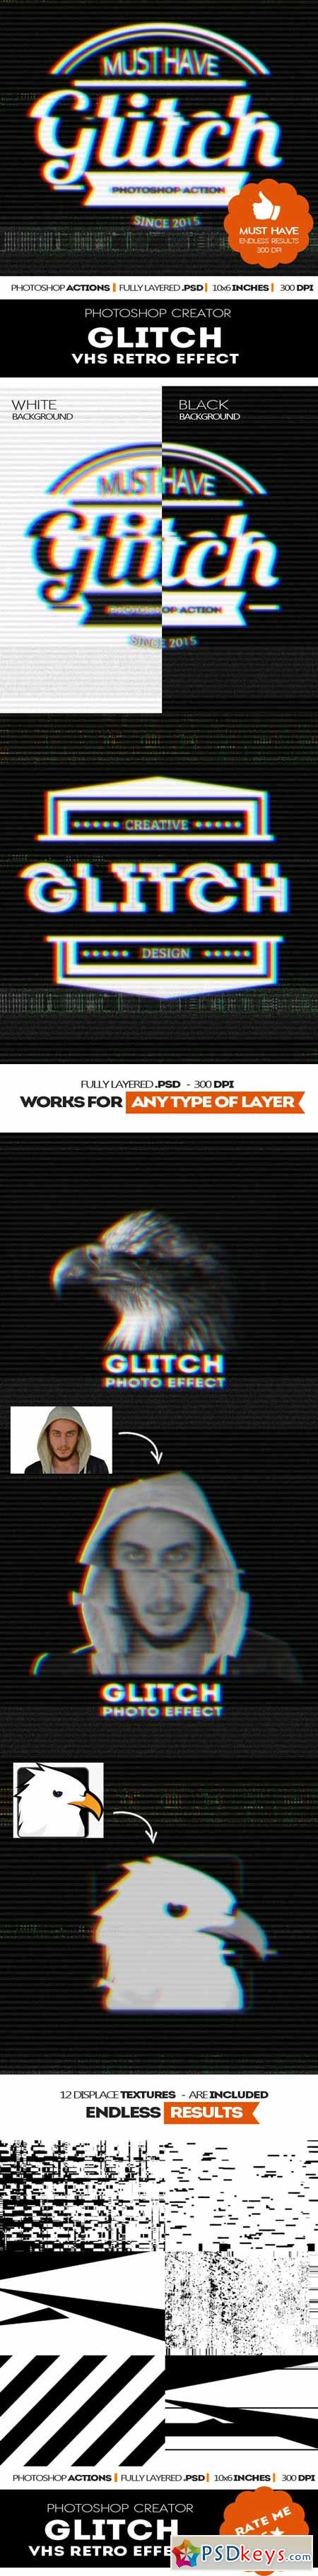 Glitch VHS Corrupt Image Effect Photoshop Actions 11939518